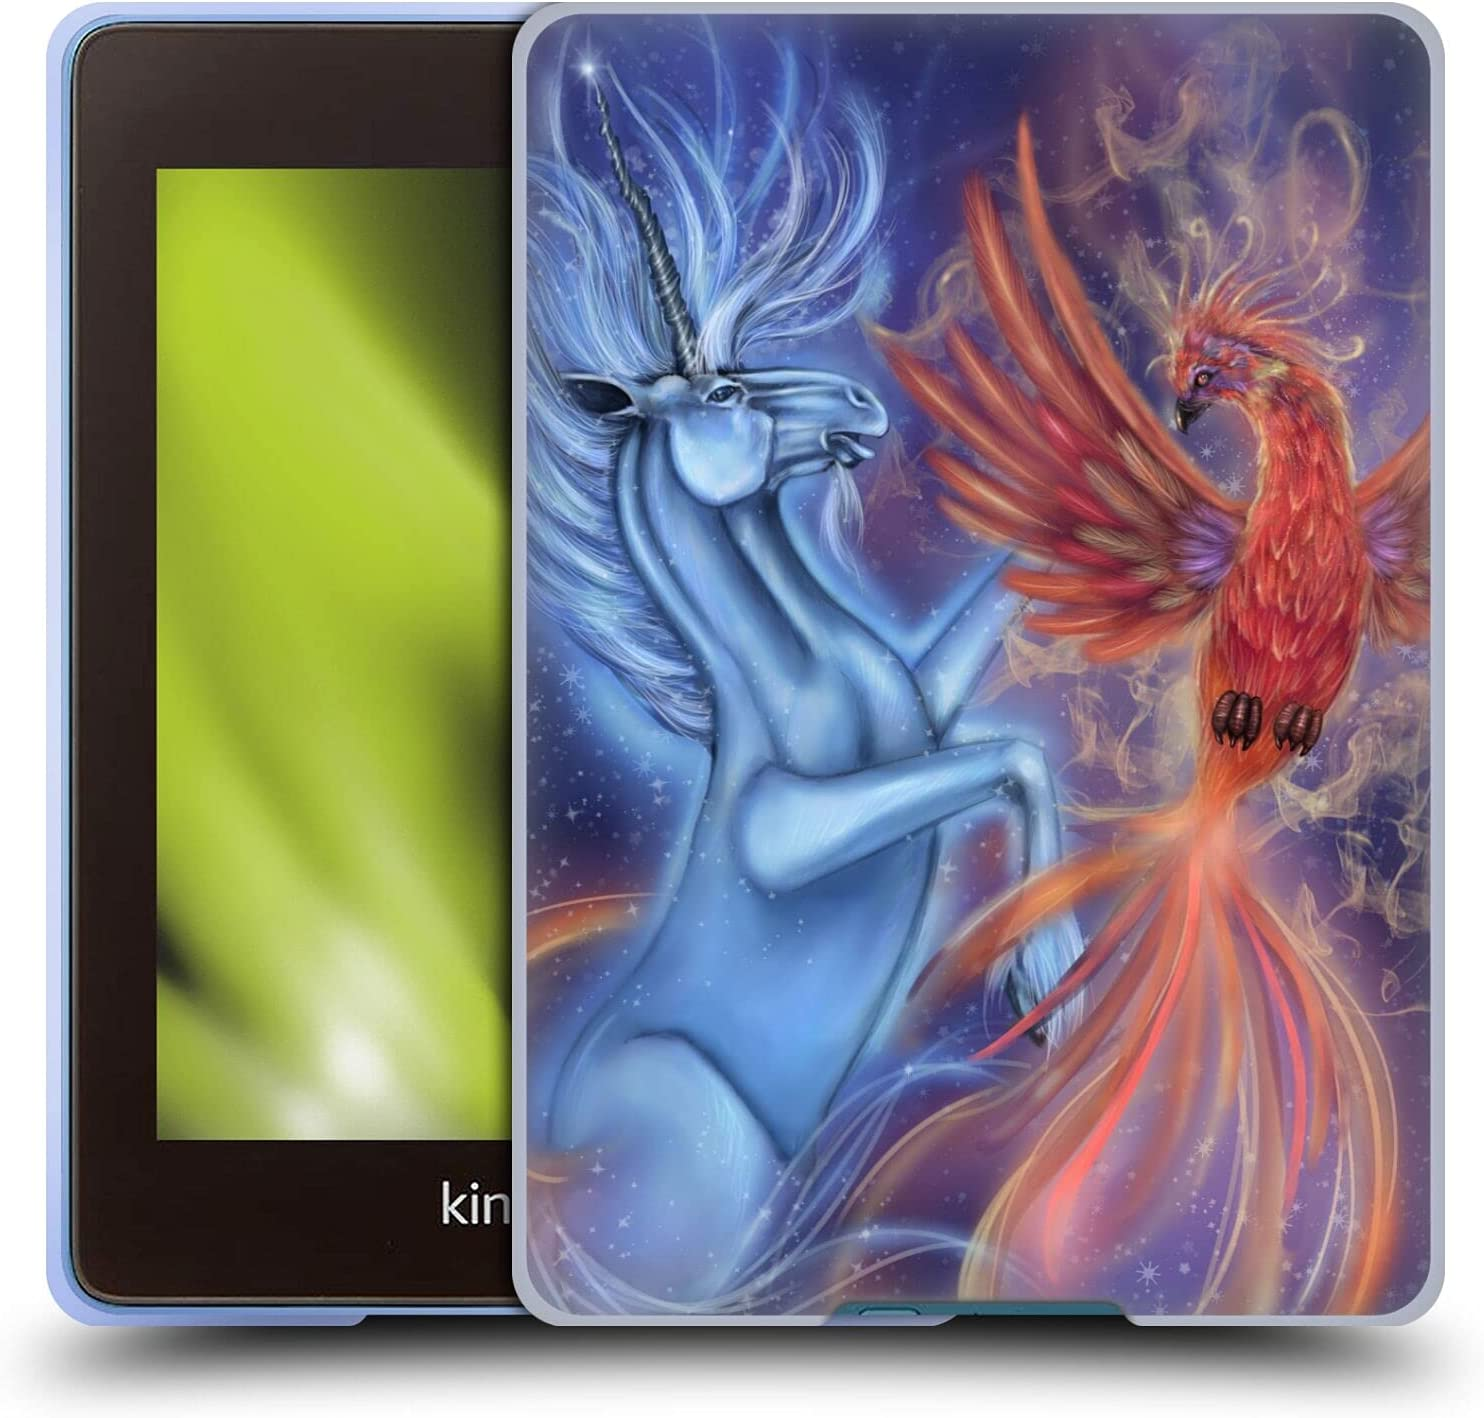 Head Case Designs Officially Licensed Ash Evans Fire Phoenix and Ice Unicorn Magical Creature Soft Gel Case Compatible with Kindle Paperwhite 4 (2019)